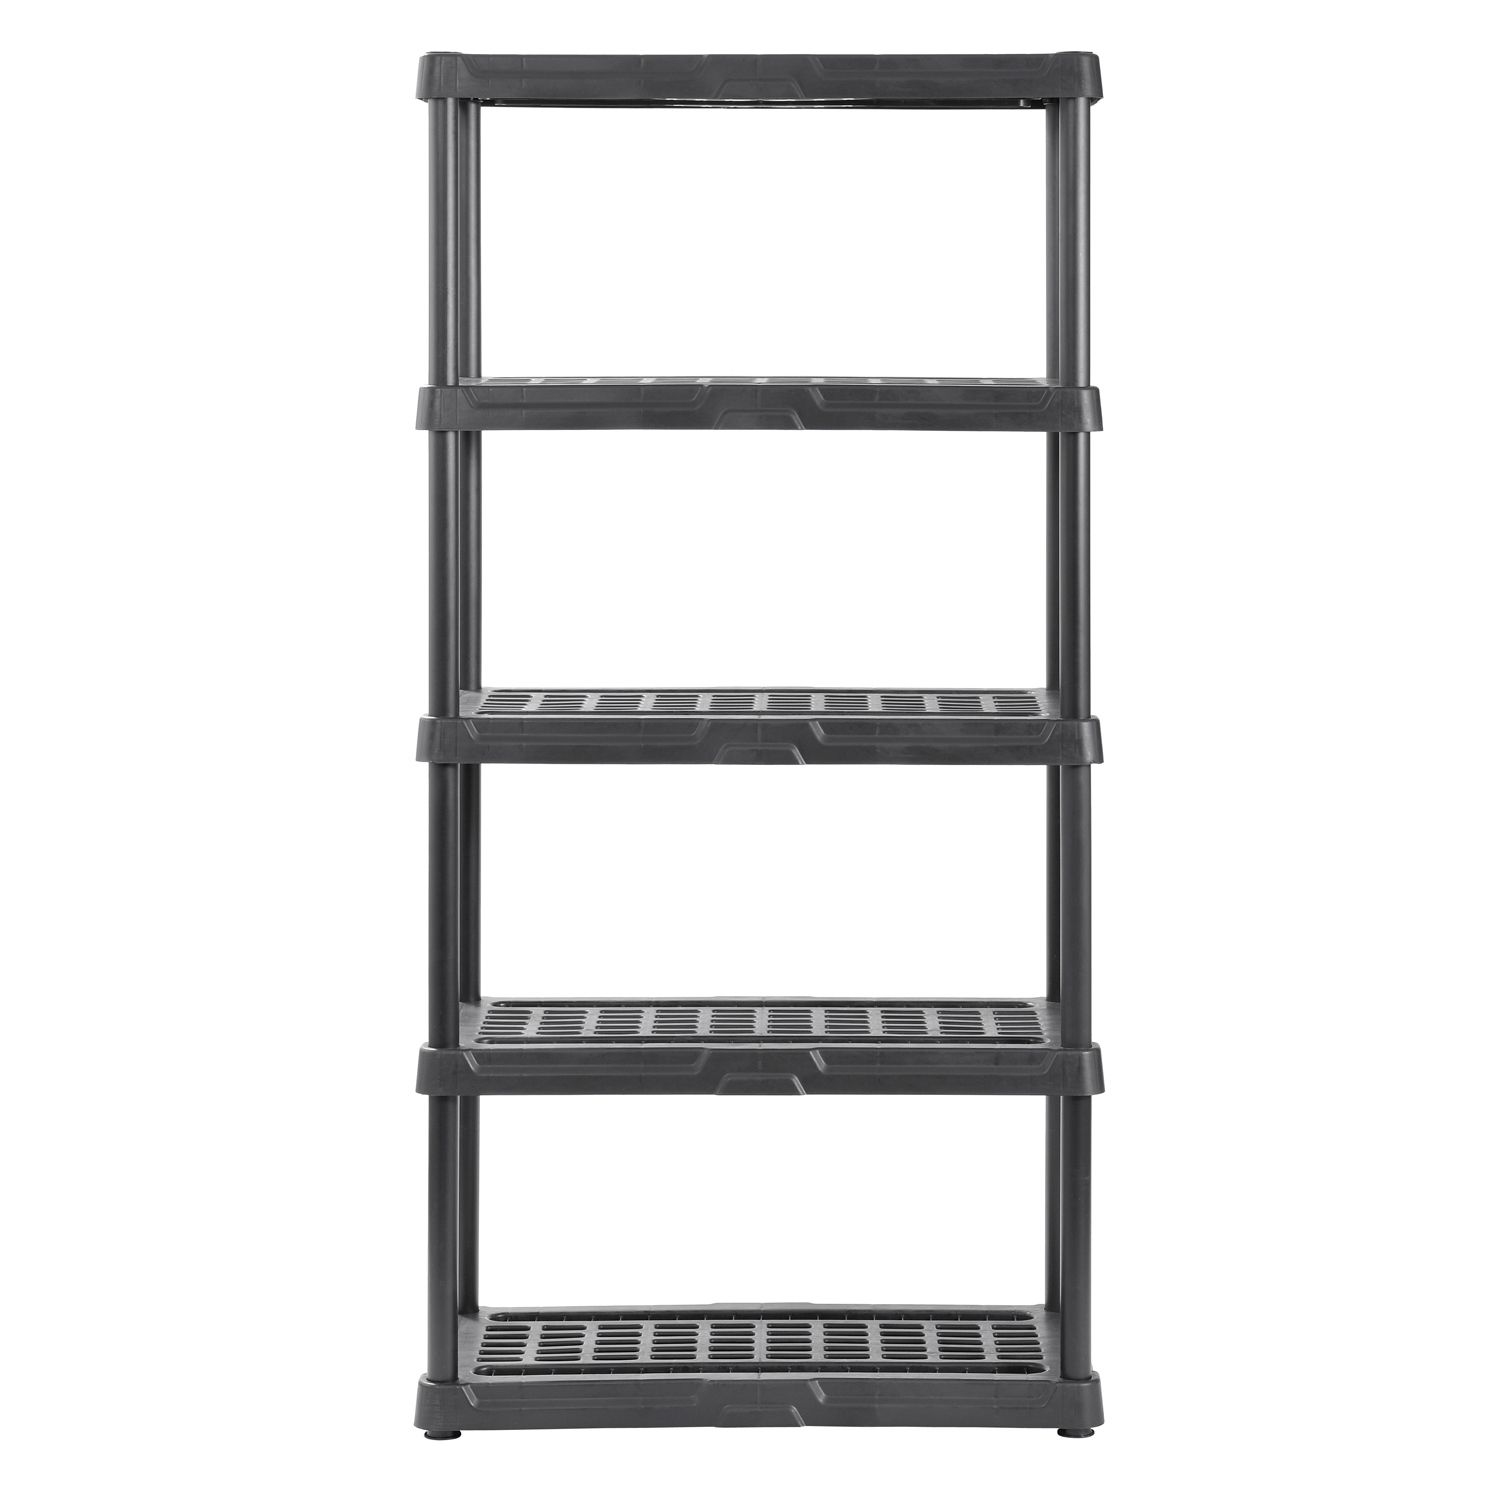 "Muscle Rack 36""W x 18""D x 72""H Five-Shelf Resin Shelving, Black"